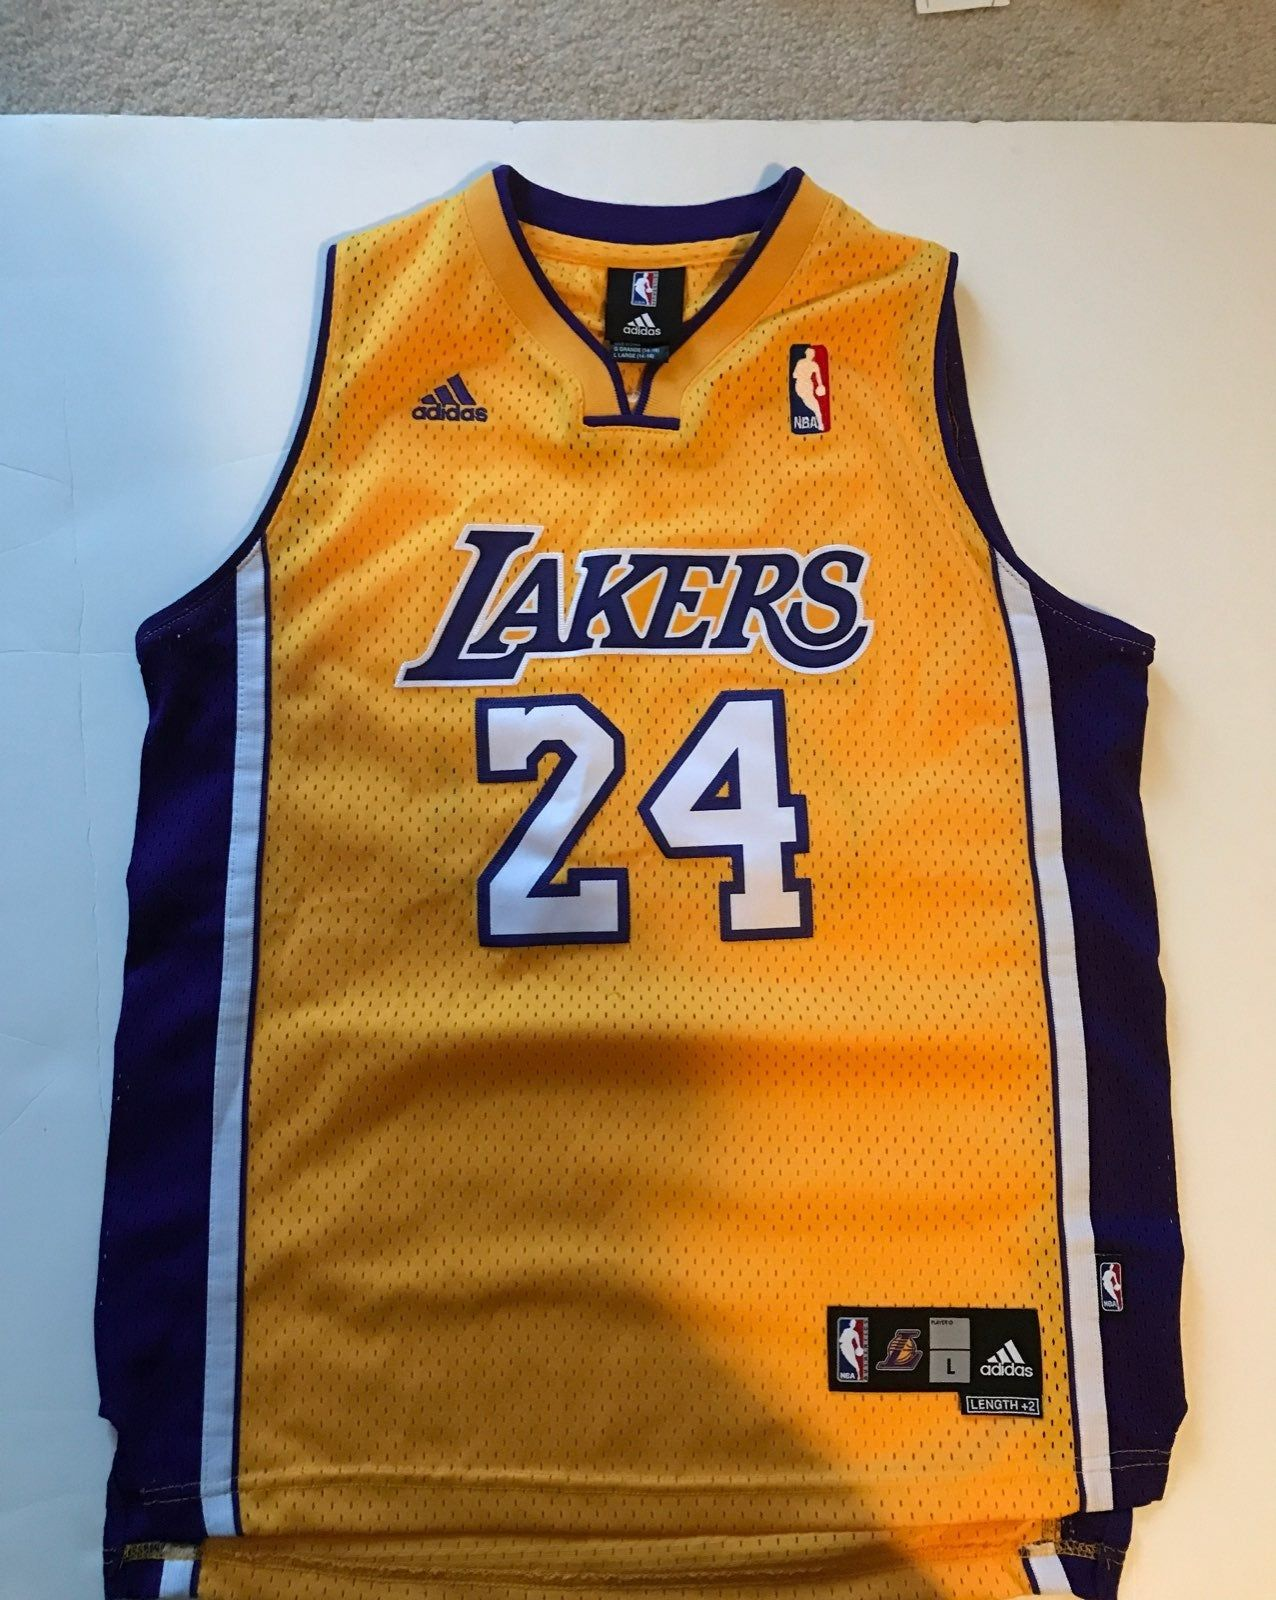 Coby Bryant / Lakers Jersey 24 Bryant lakers, Bryant